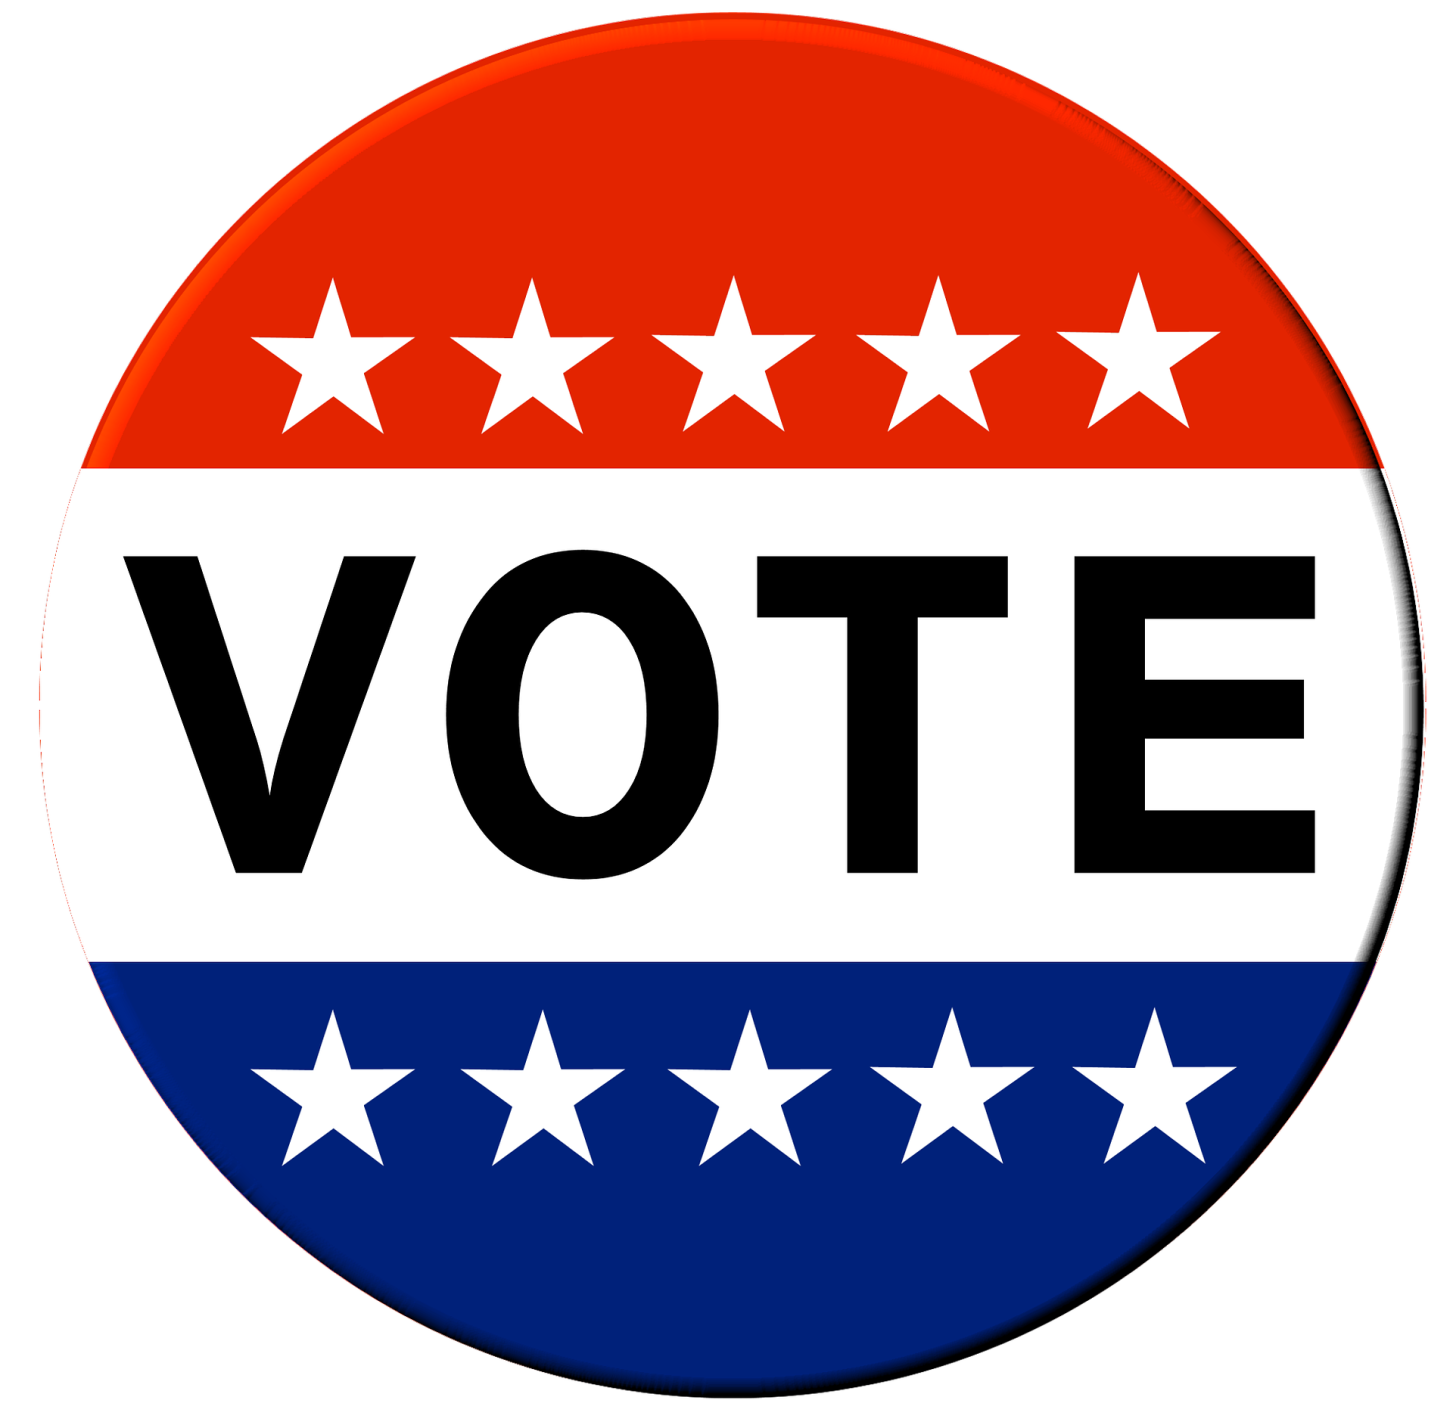 early voting for city school elections begins monday news rh panolawatchman com election day clipart election day clipart